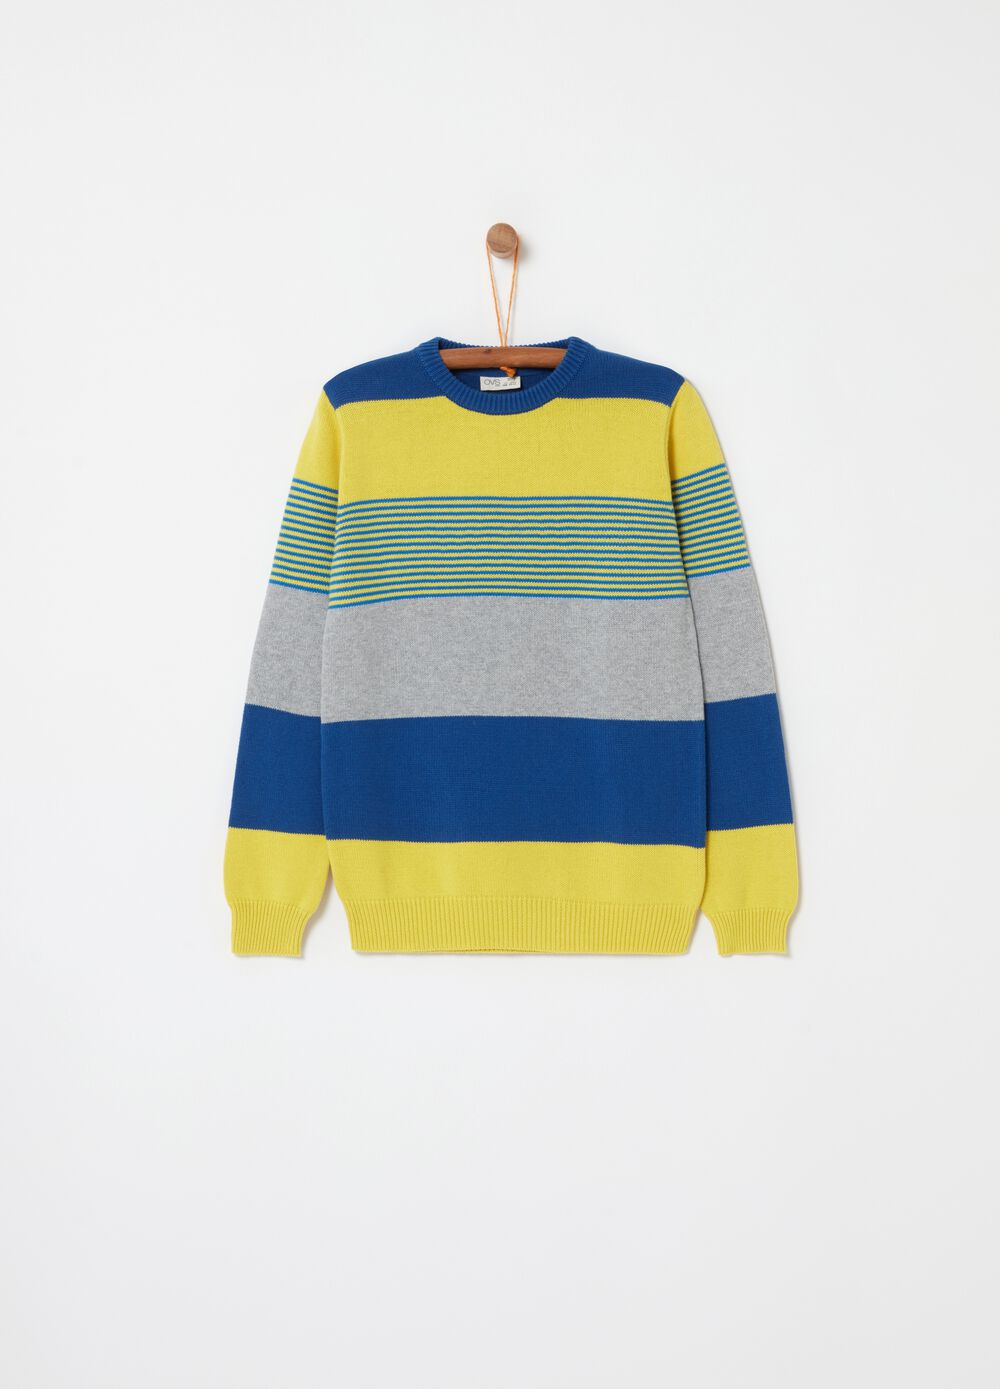 Knitted top with round neck and striped pattern